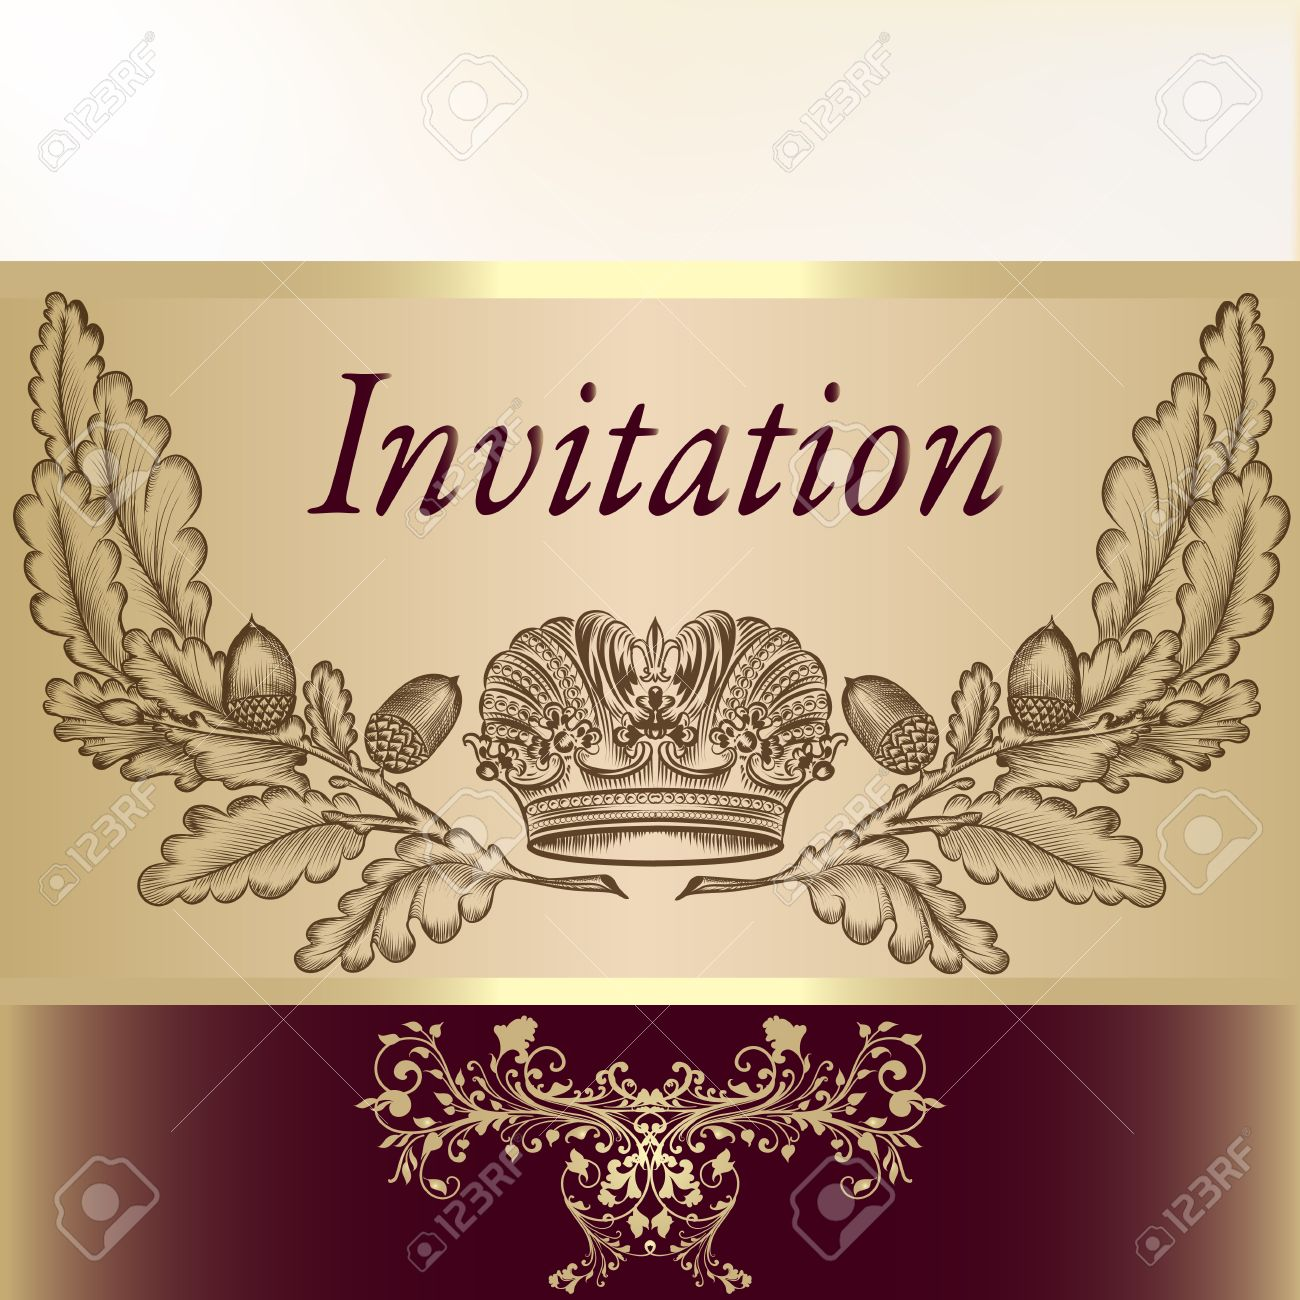 Royal Invitation Card For Design